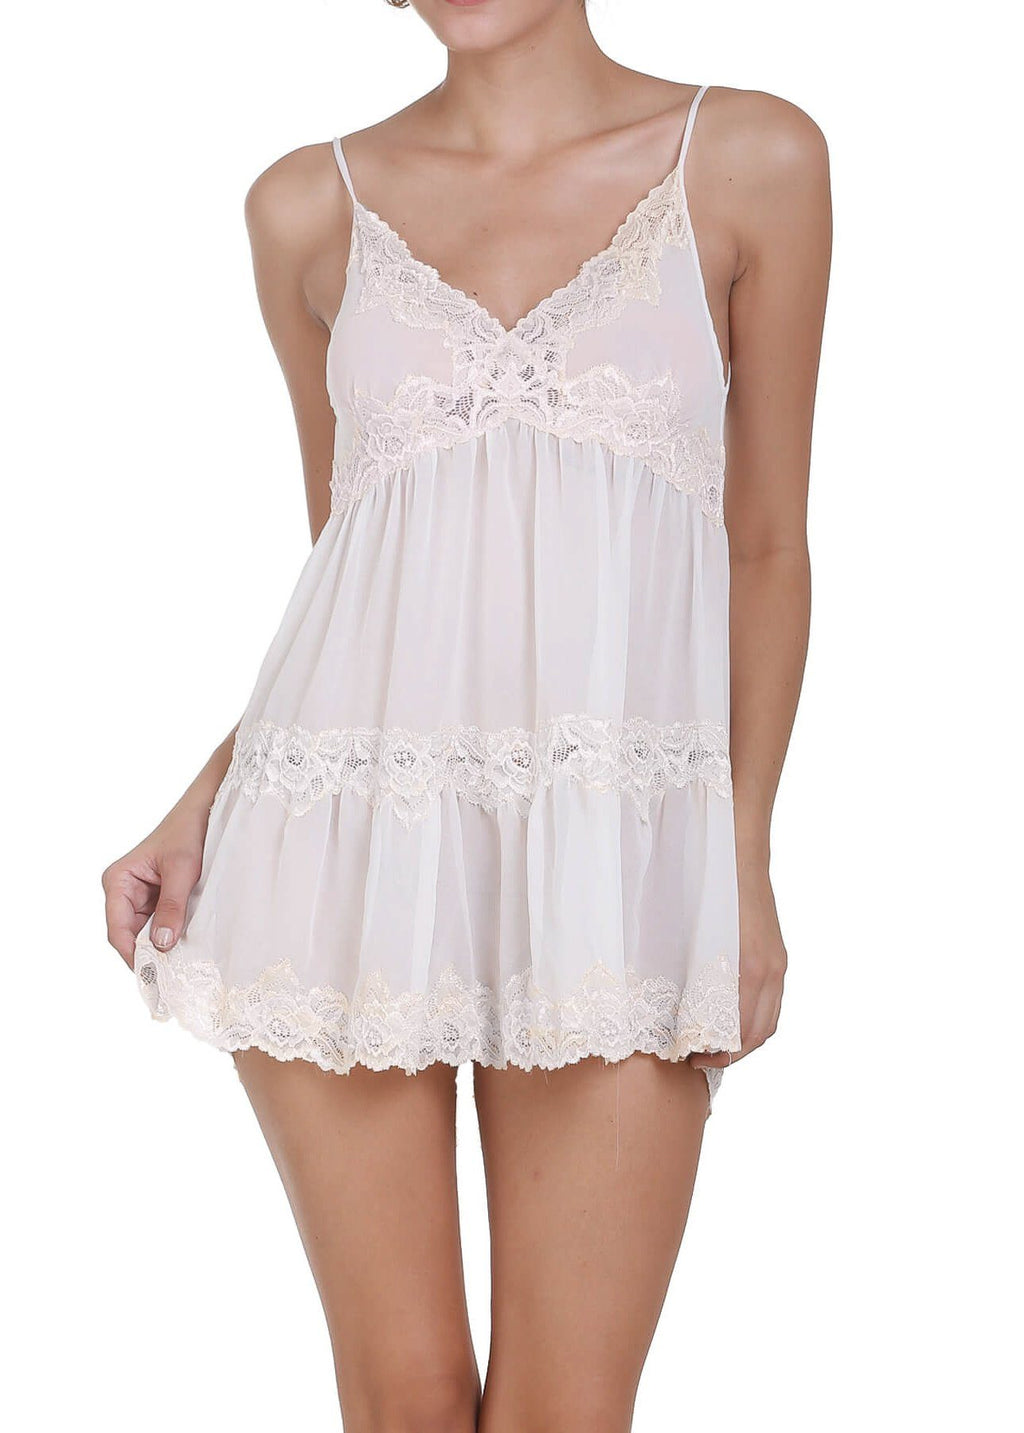 Sophie Chemise with Thong - White Mystique Intimates